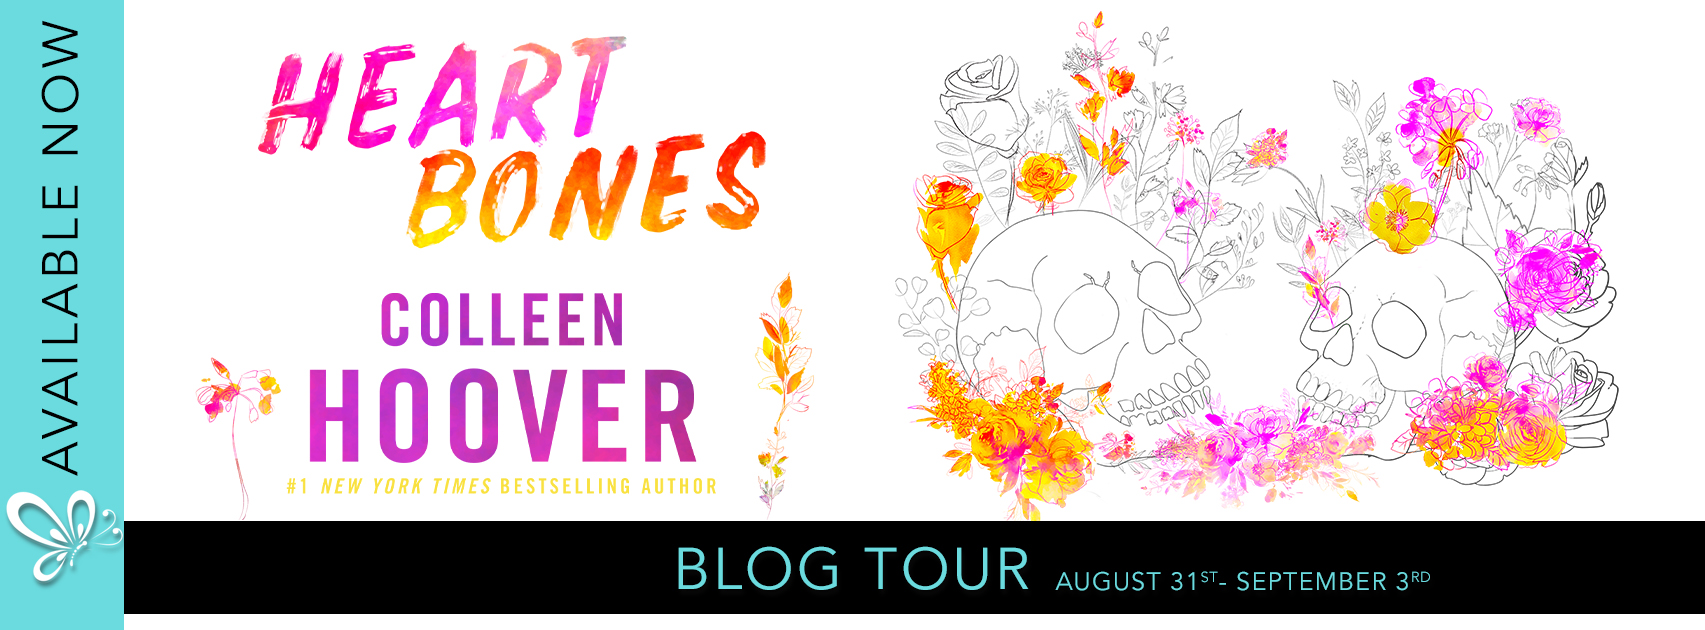 Blog Tour: Heart Bones by Colleen Hoover